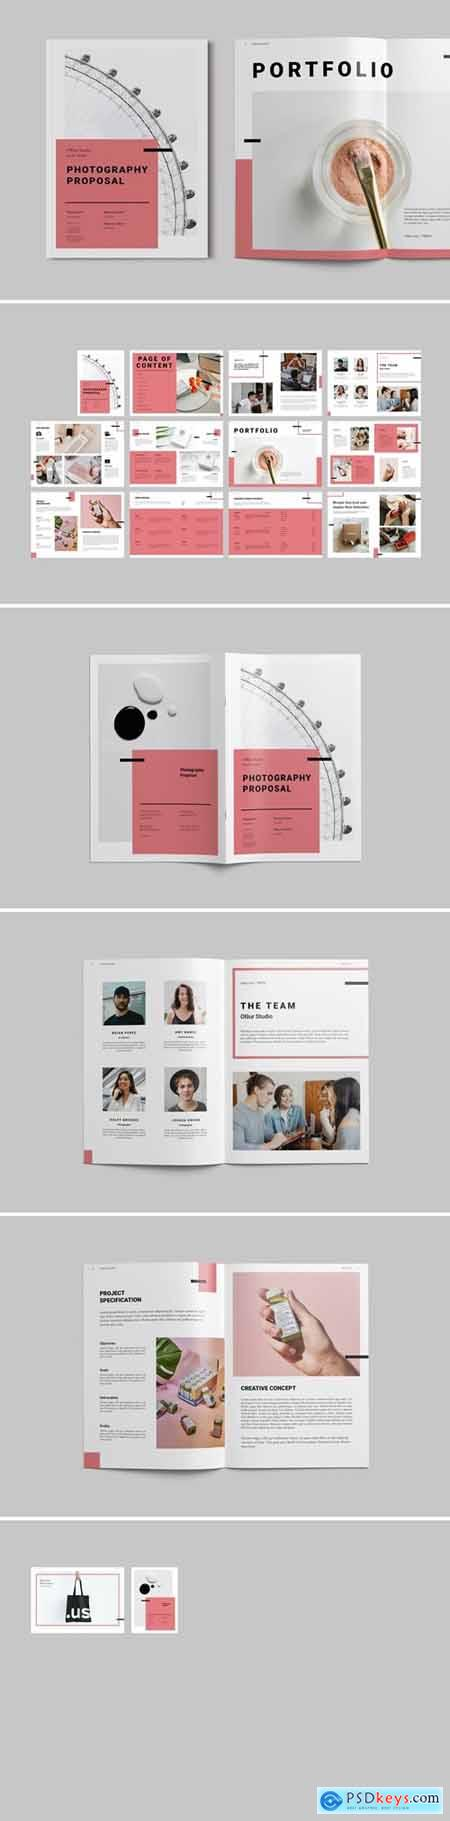 Photography Proposal Template NCPWRWQ